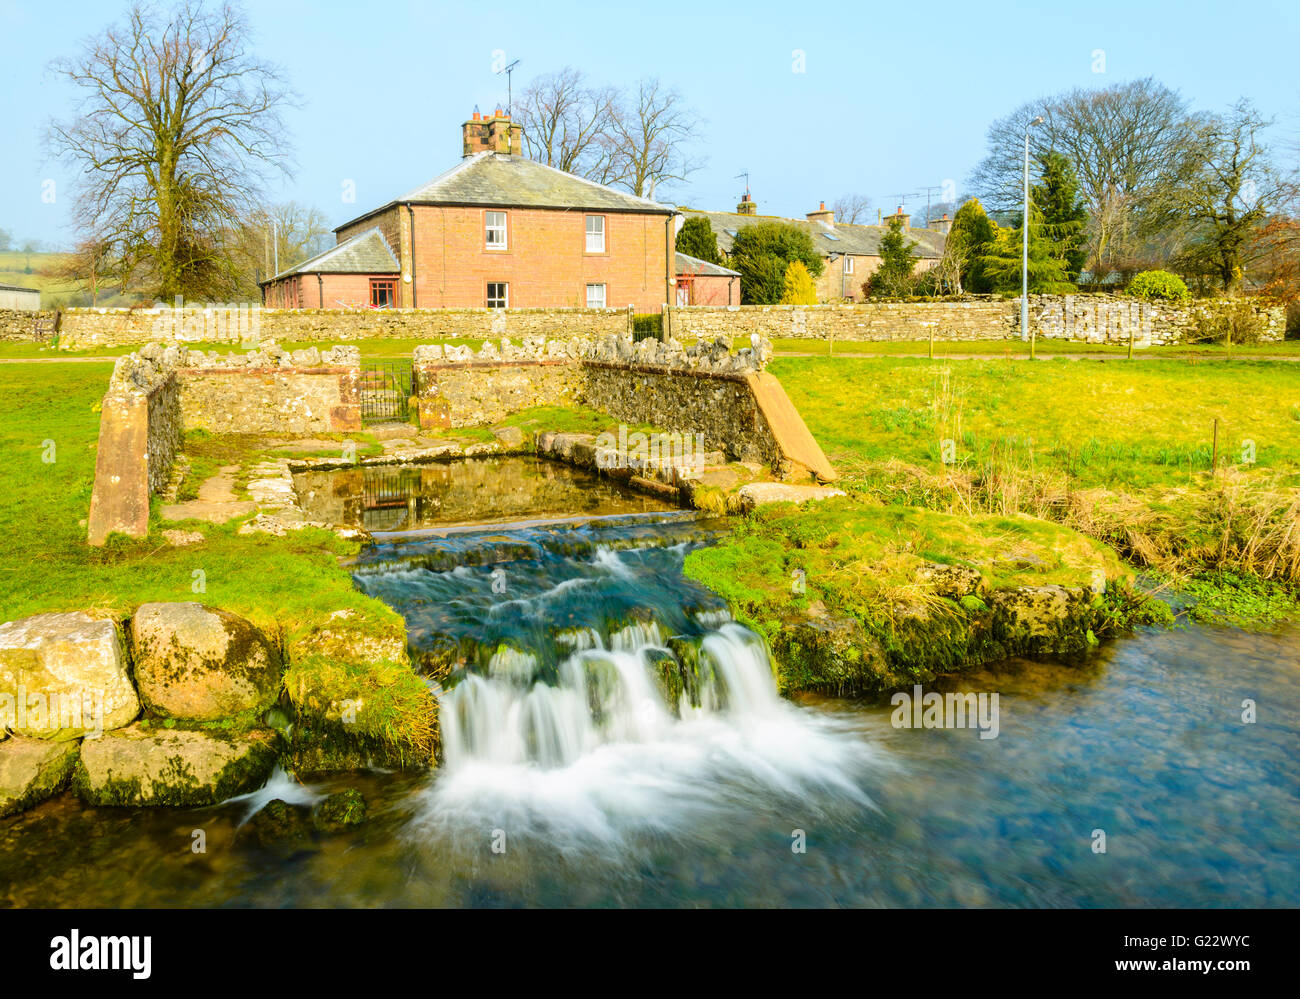 Natural spring known as St Helen's Well, Great Asby, Cumbria (shown as St Thomas's Well on some maps) - Stock Image